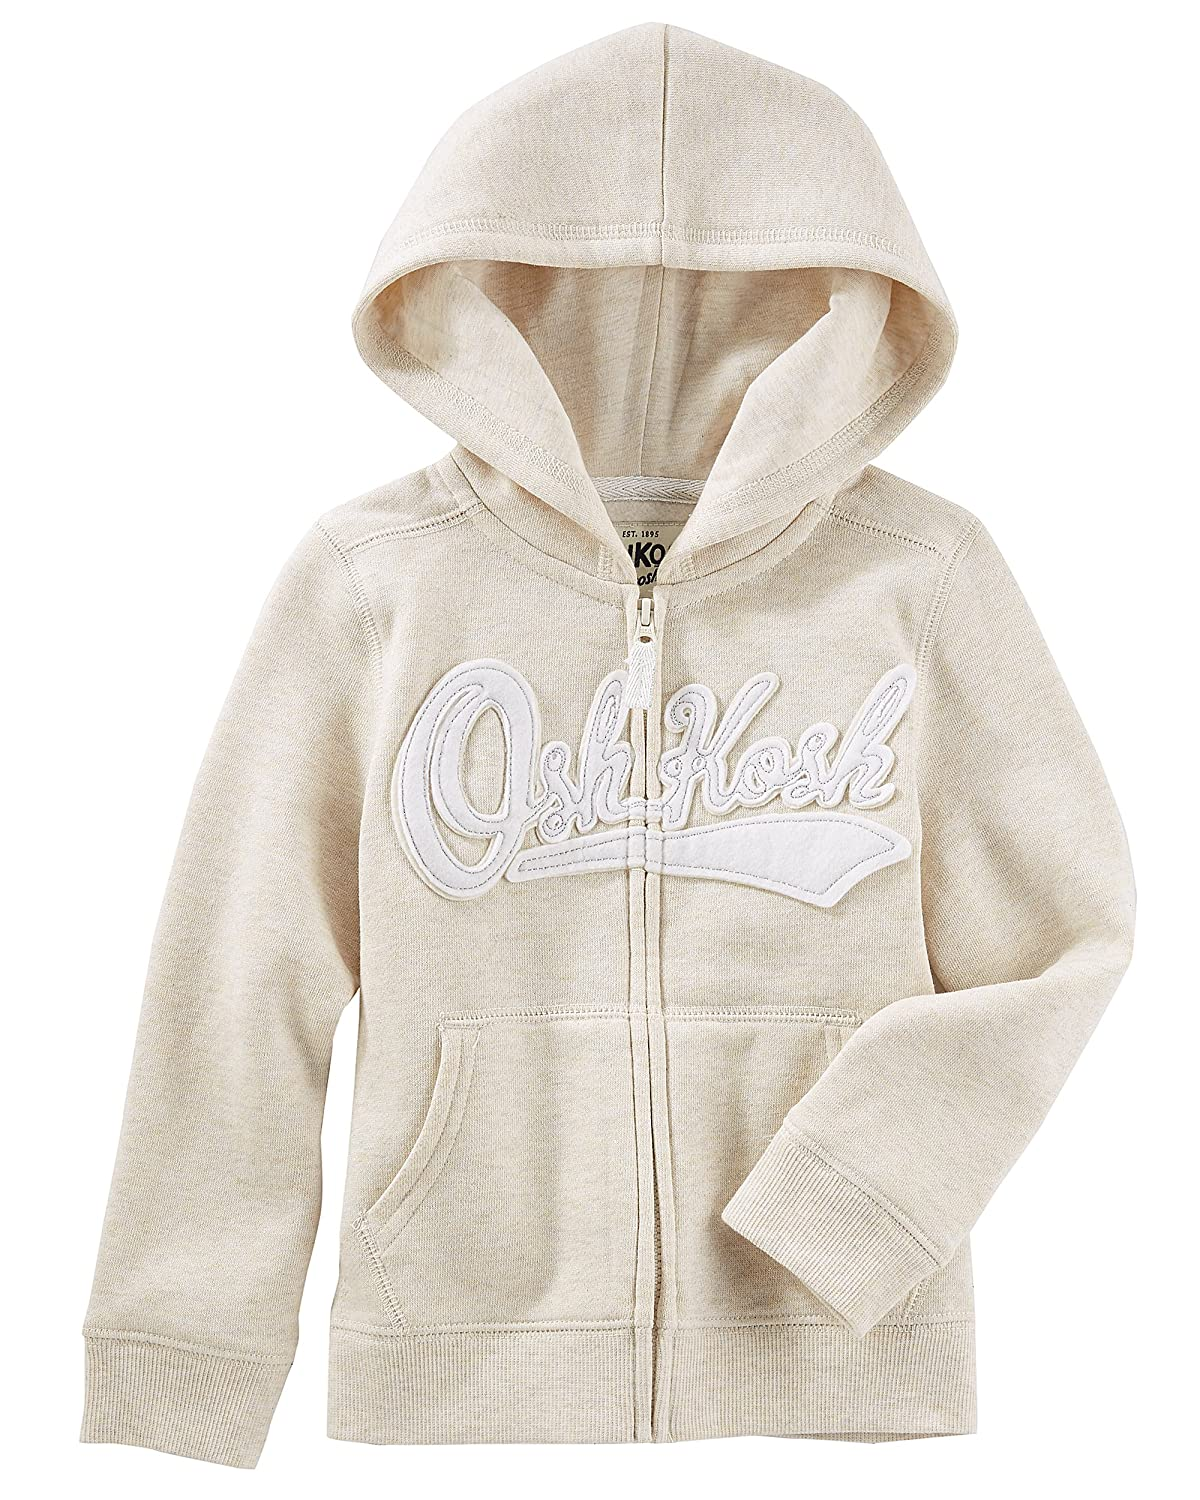 OshKosh B'Gosh Girls' 2T-8 Long Sleeve Logo Hoodie